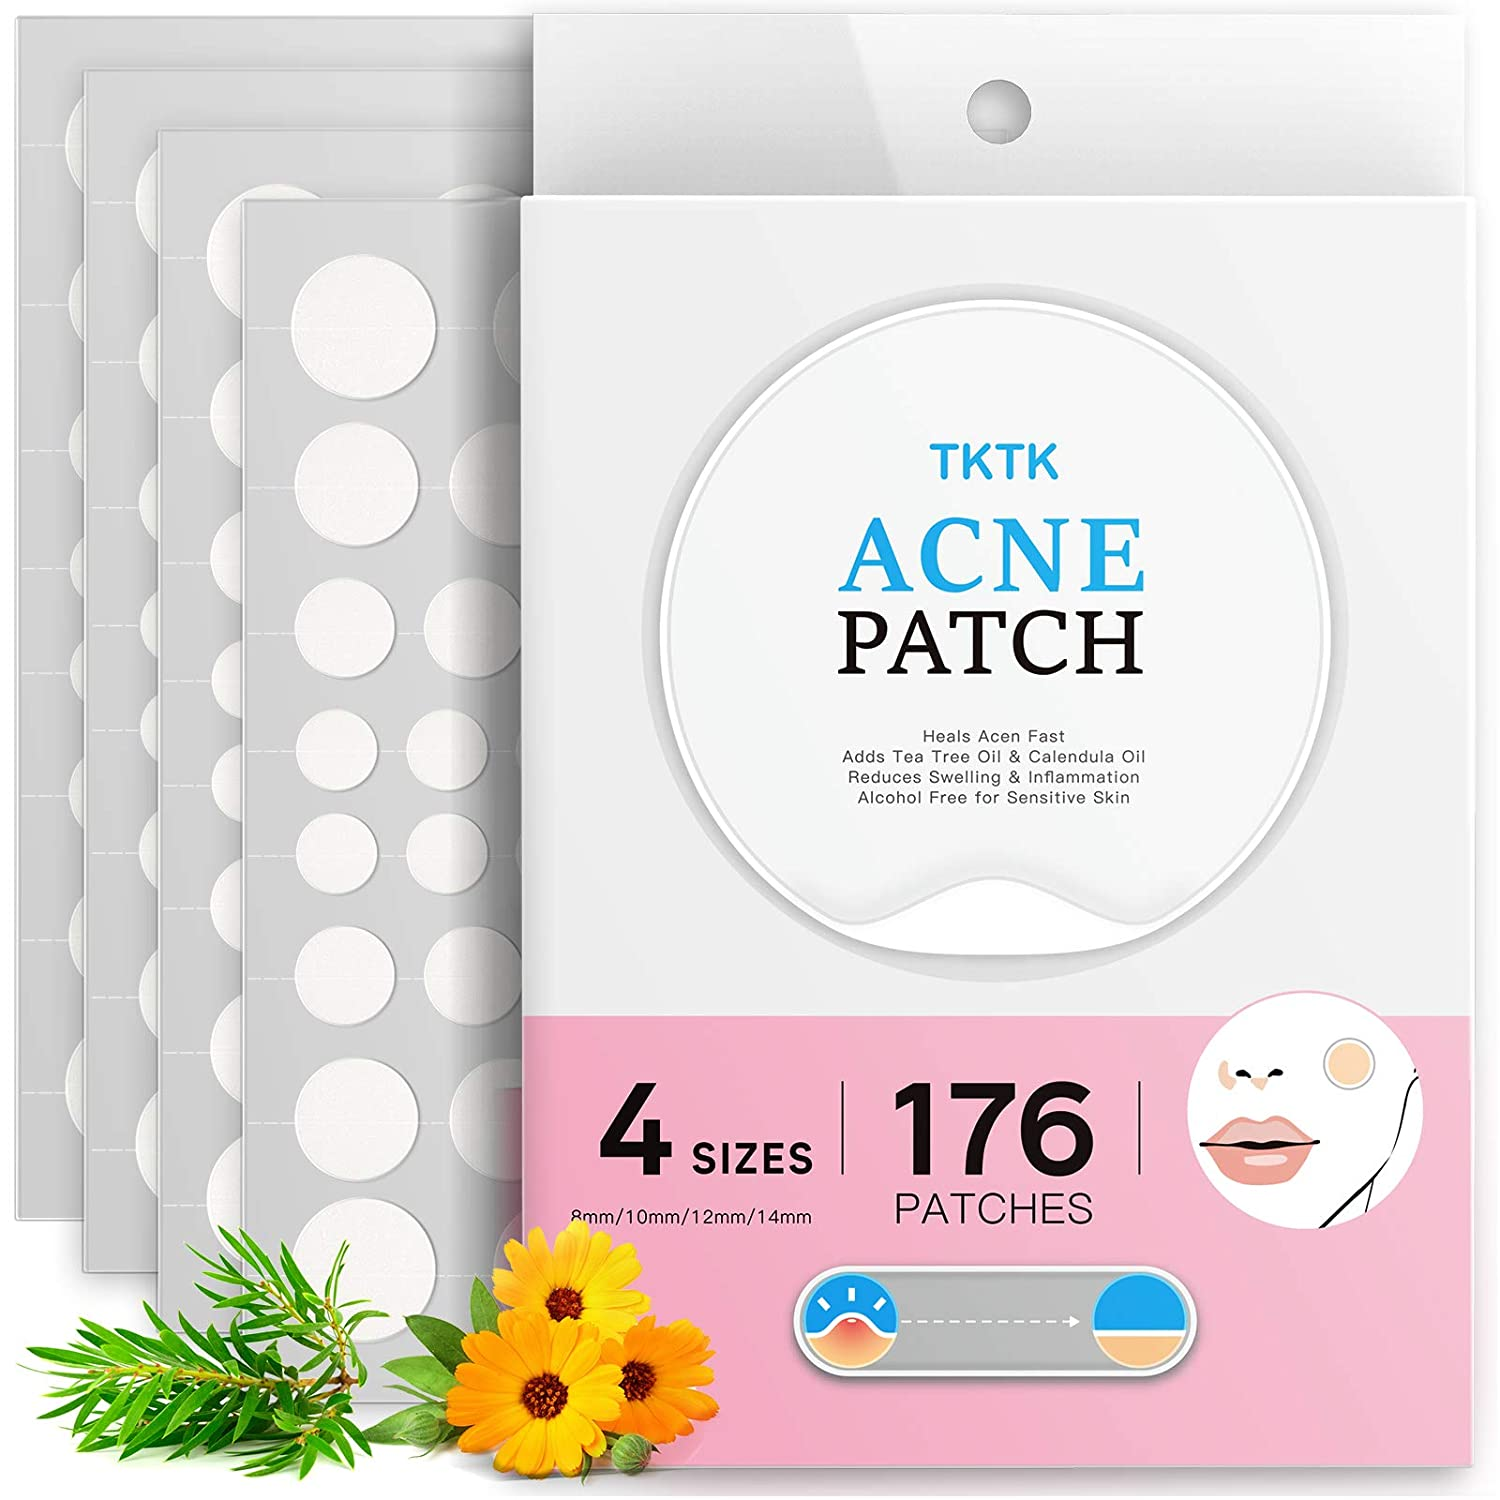 Pimple Patches, TKTK Acne Patches For Face 4 Sizes 176 Patches Hydrocolloid Patch Acne Absorbing Zit Patch Easy To Peel, Add Tea Tree & Calendula Oil